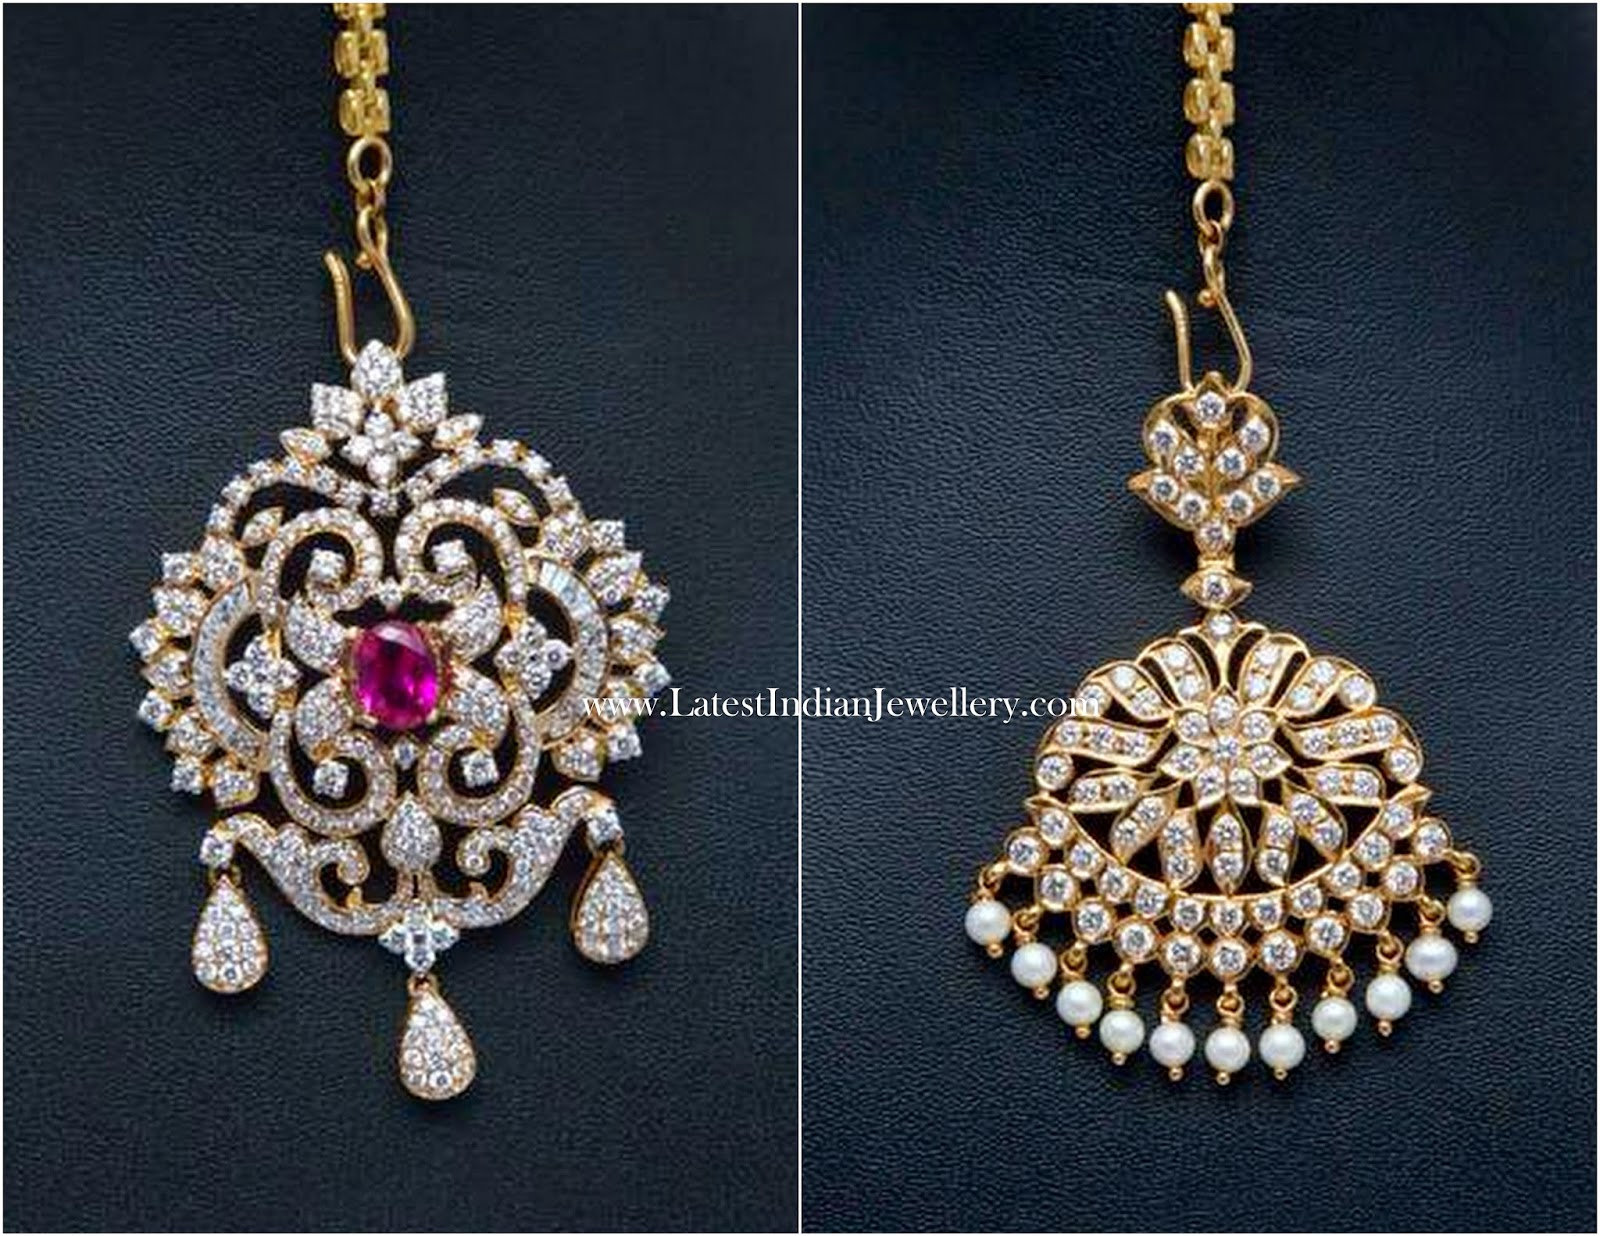 Diamond Pendant Cum Maang Tikka Latest Indian Jewellery